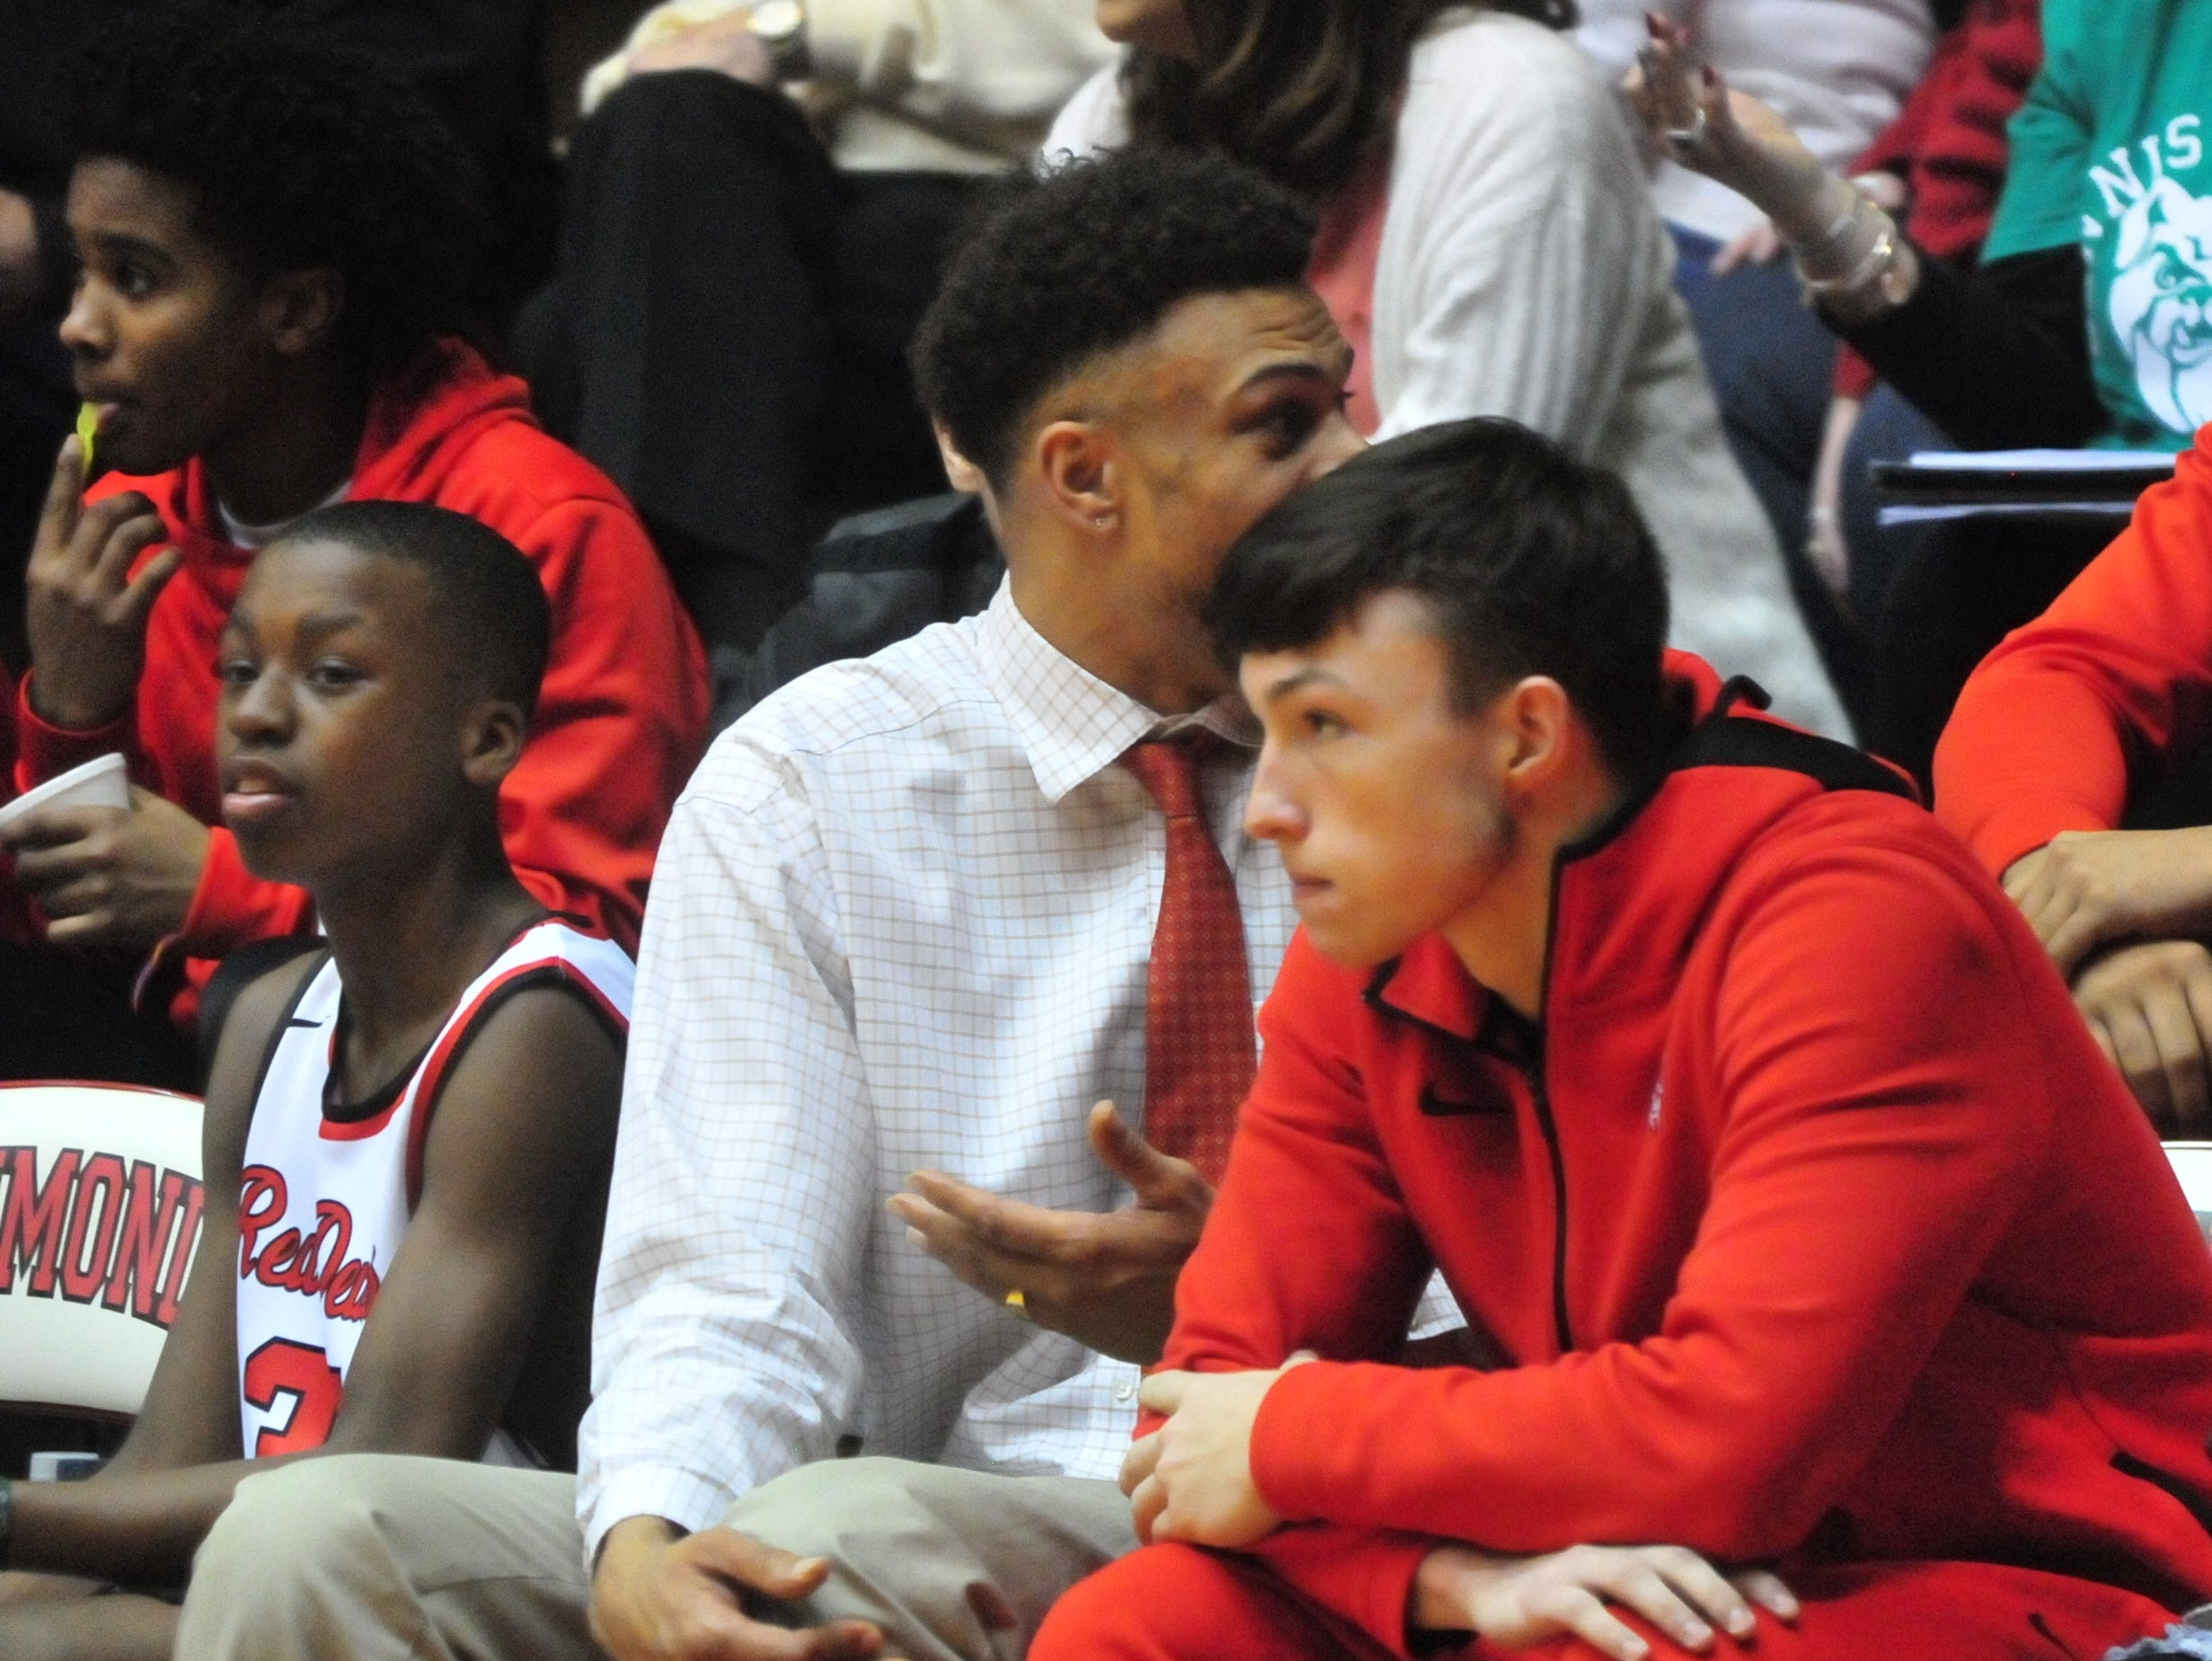 Jordan Stolle, right, sits on the bench during Saturday's 42-39 boys basketball loss to Connersville Dec. 15, 2018 at Tiernan Center. Stolle will be eligible to return on Wednesday.